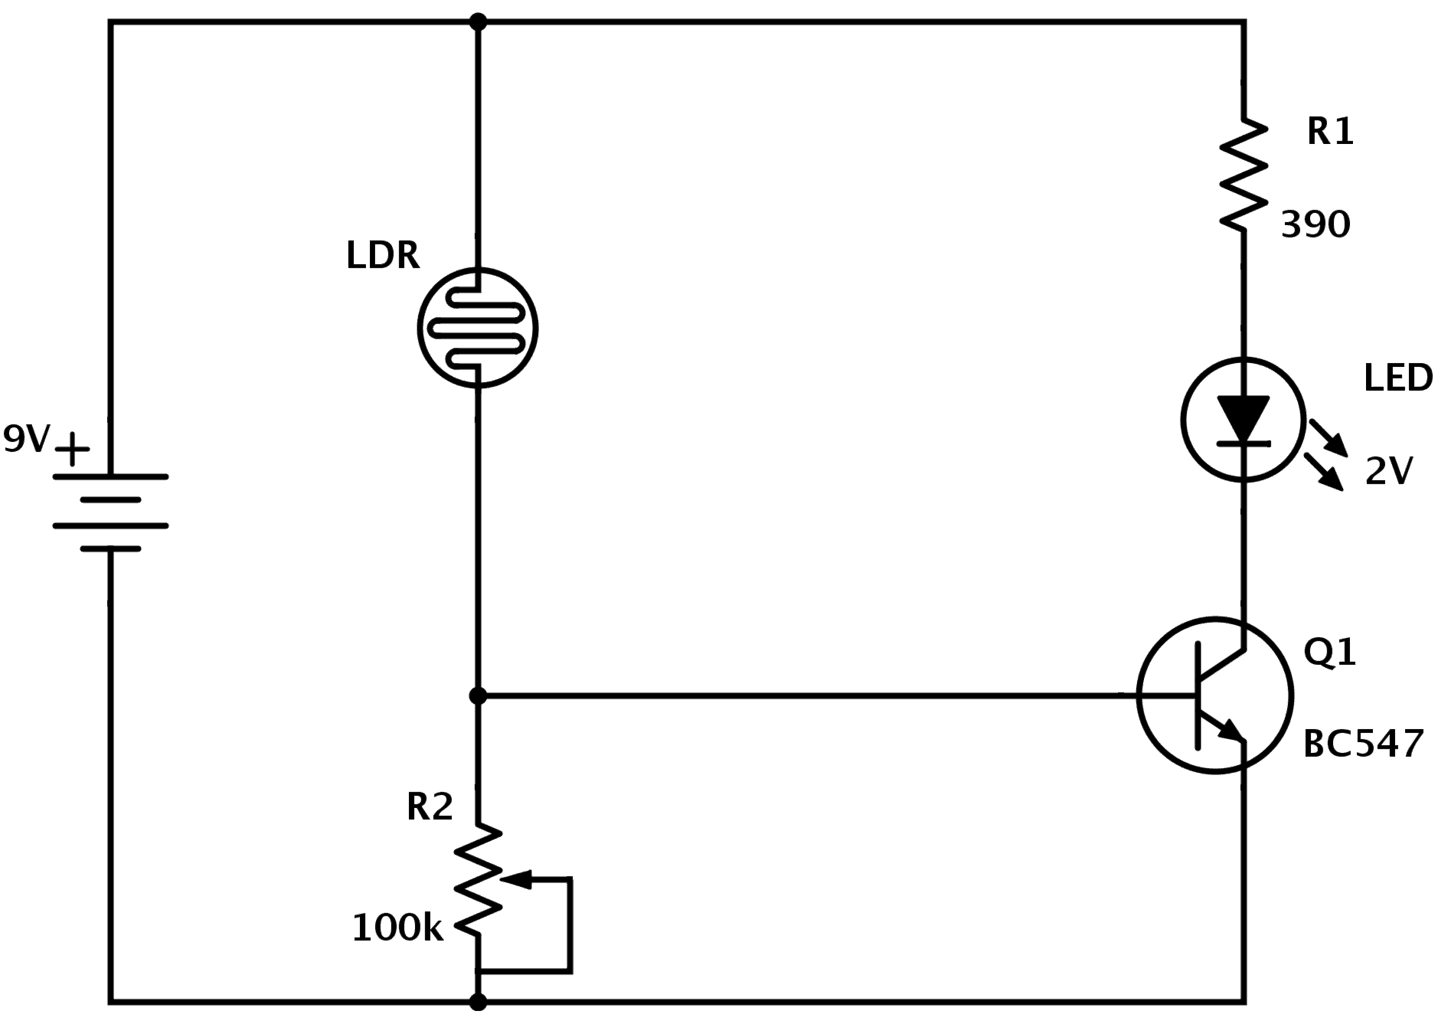 Circuit diagram how to read and understand any schematic ldr circuit diagram pooptronica Choice Image